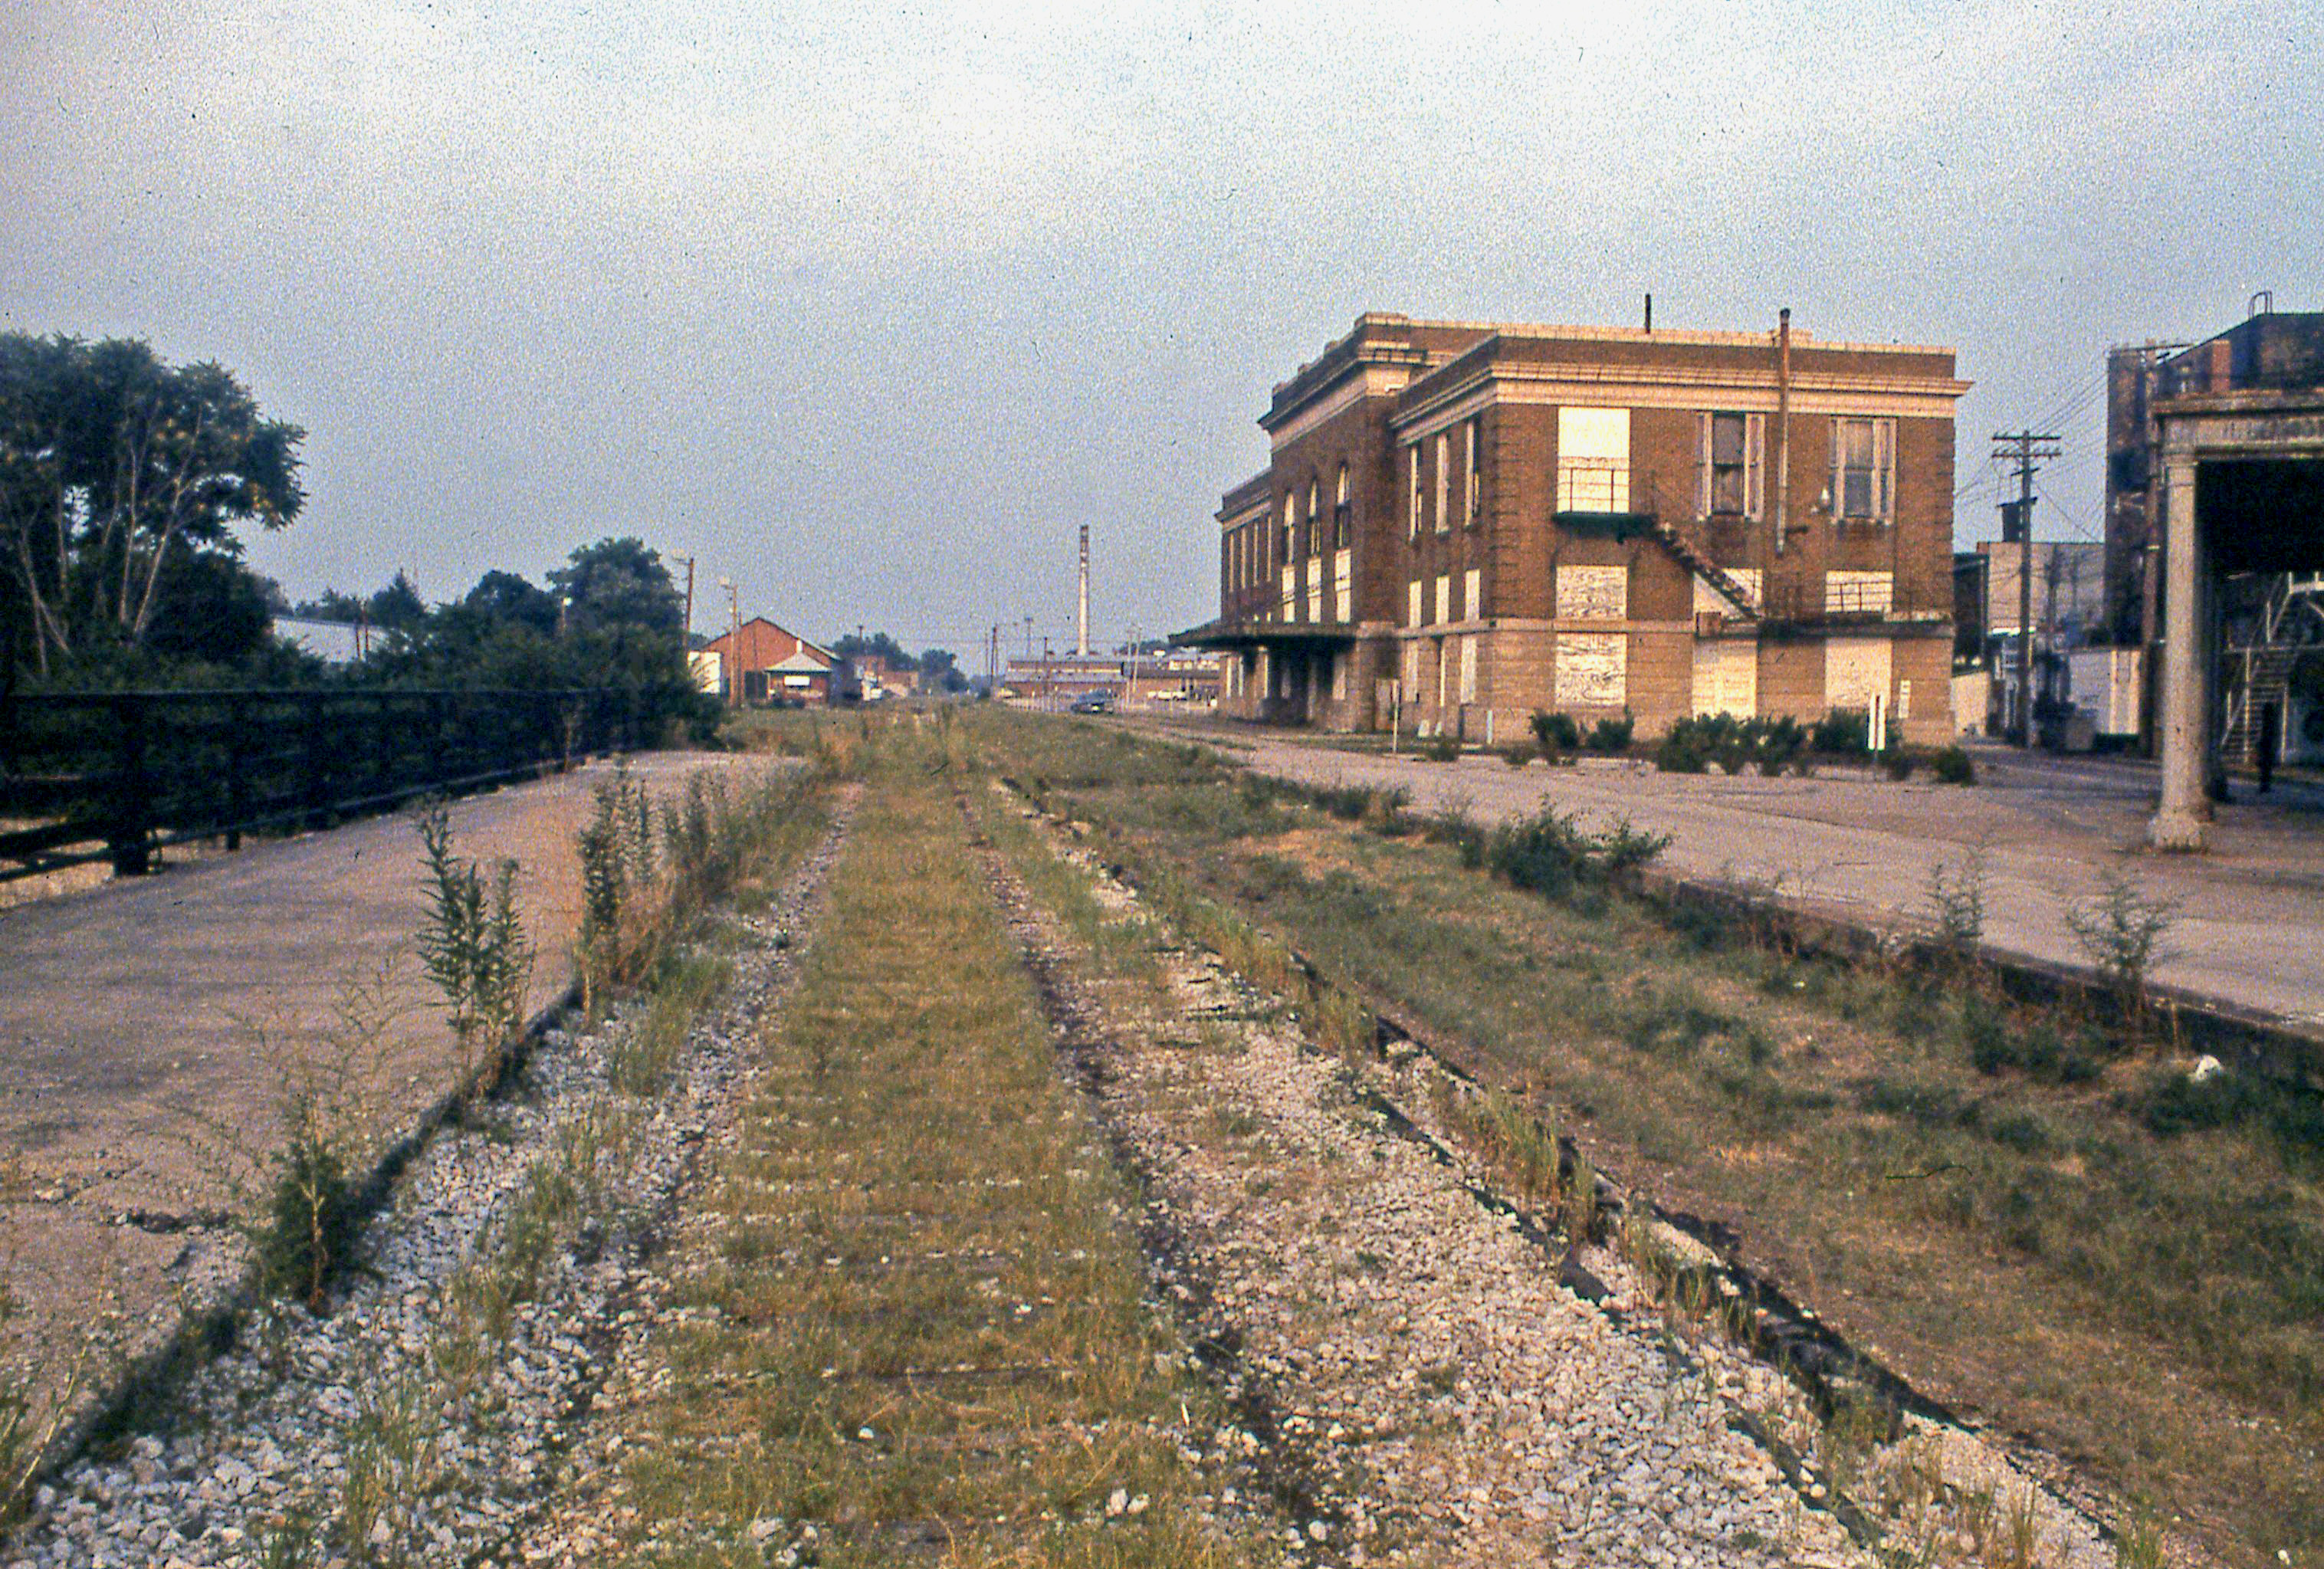 Mattoon (IL) United States  city images : trainstations conrail newyorkcentral abandonedrailroads ...